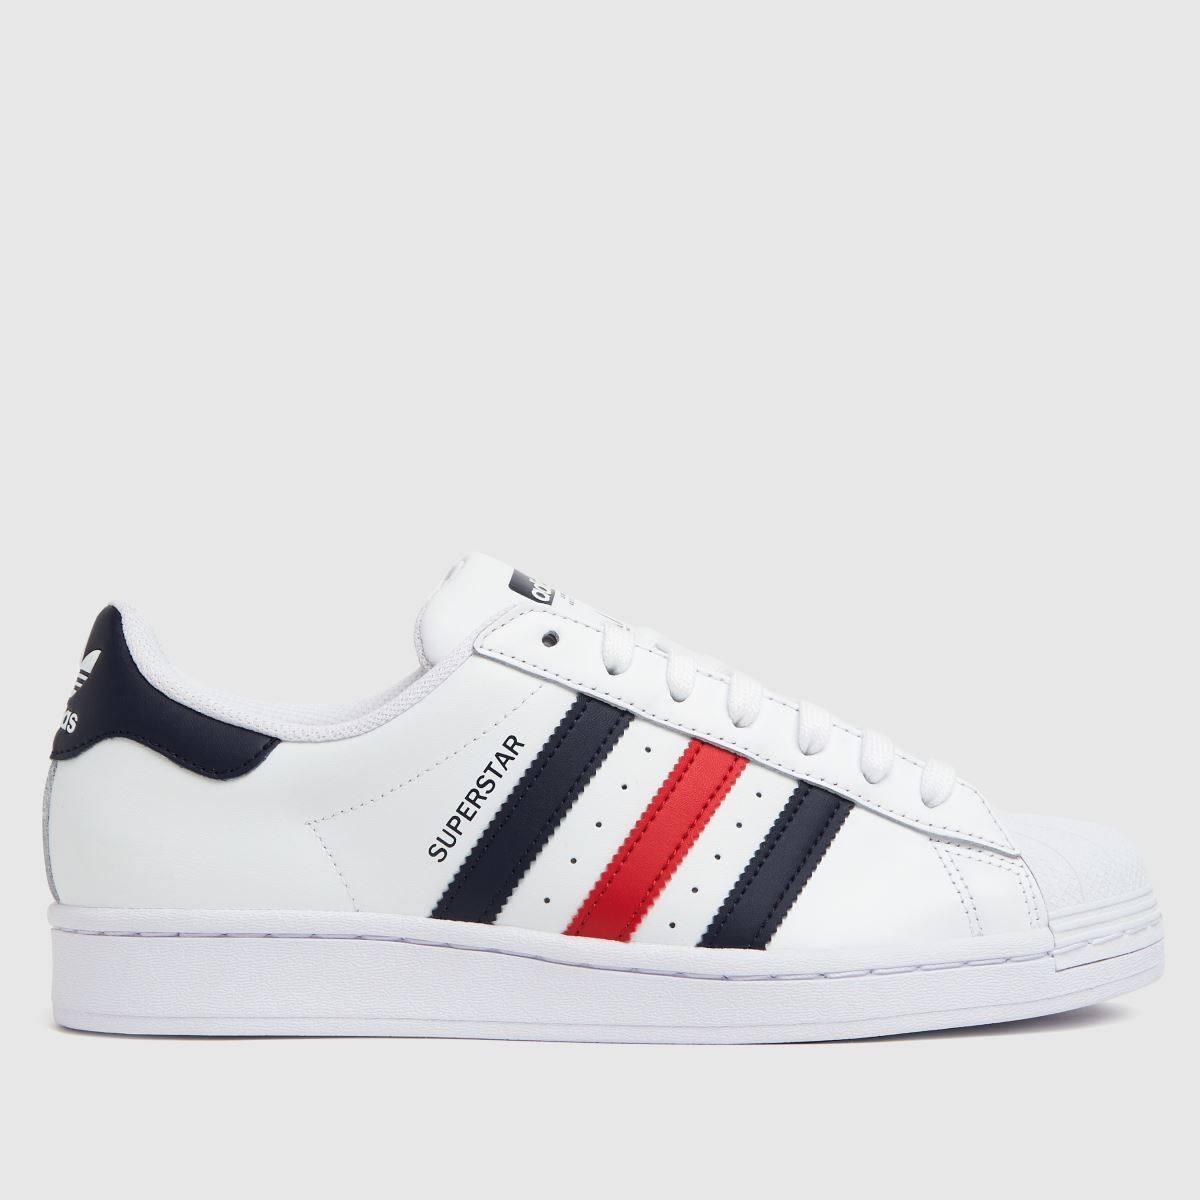 Adidas White & Red Superstar Trainers